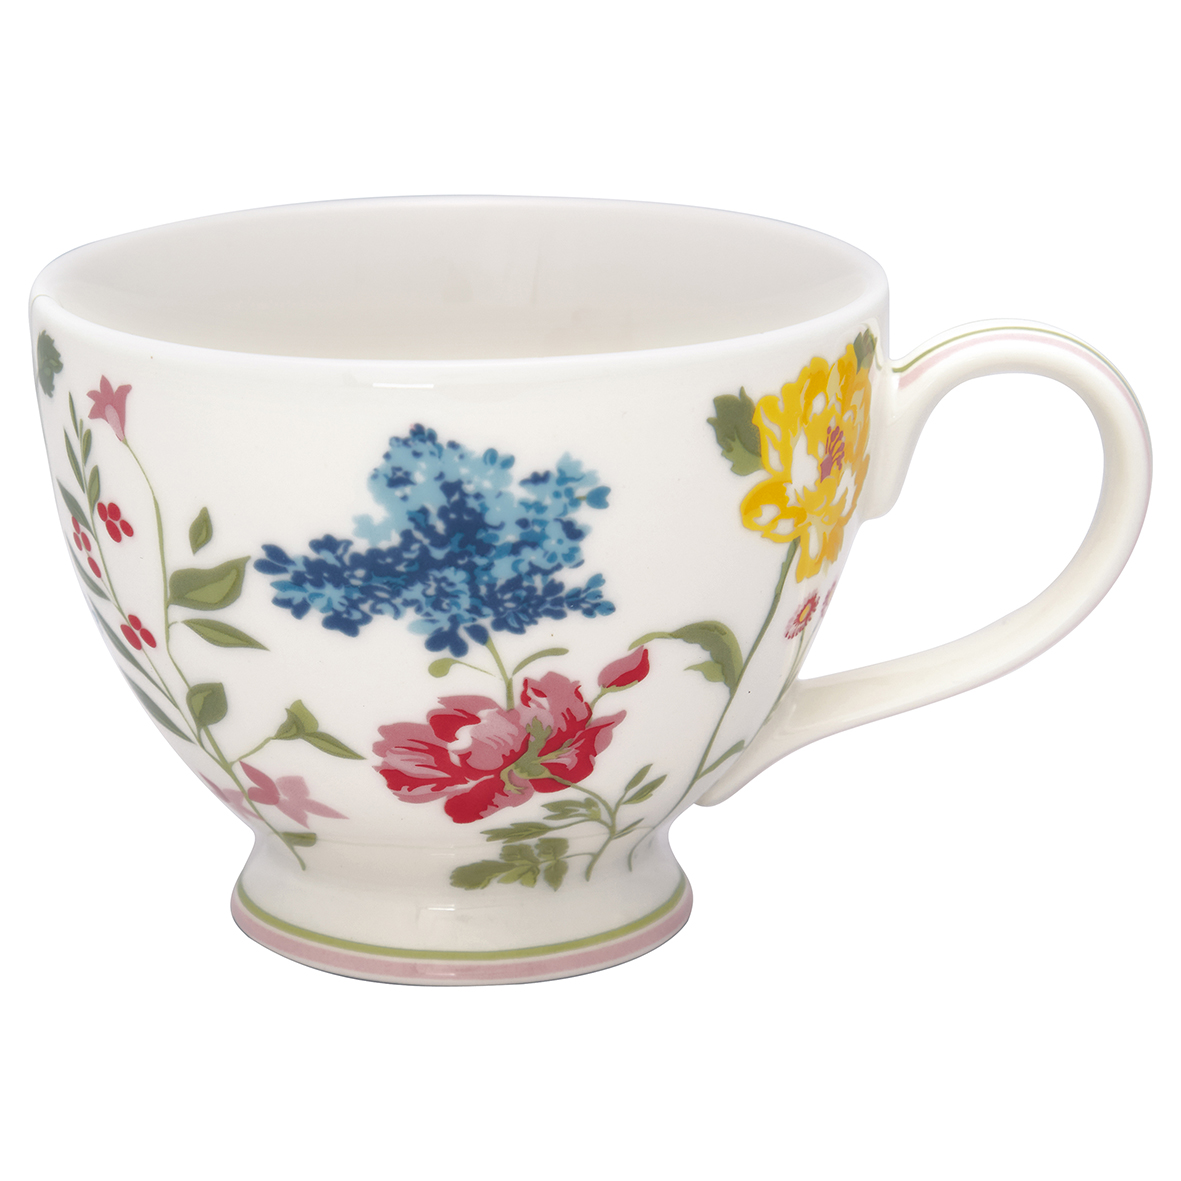 Greengate Teacup Thilde white Becher